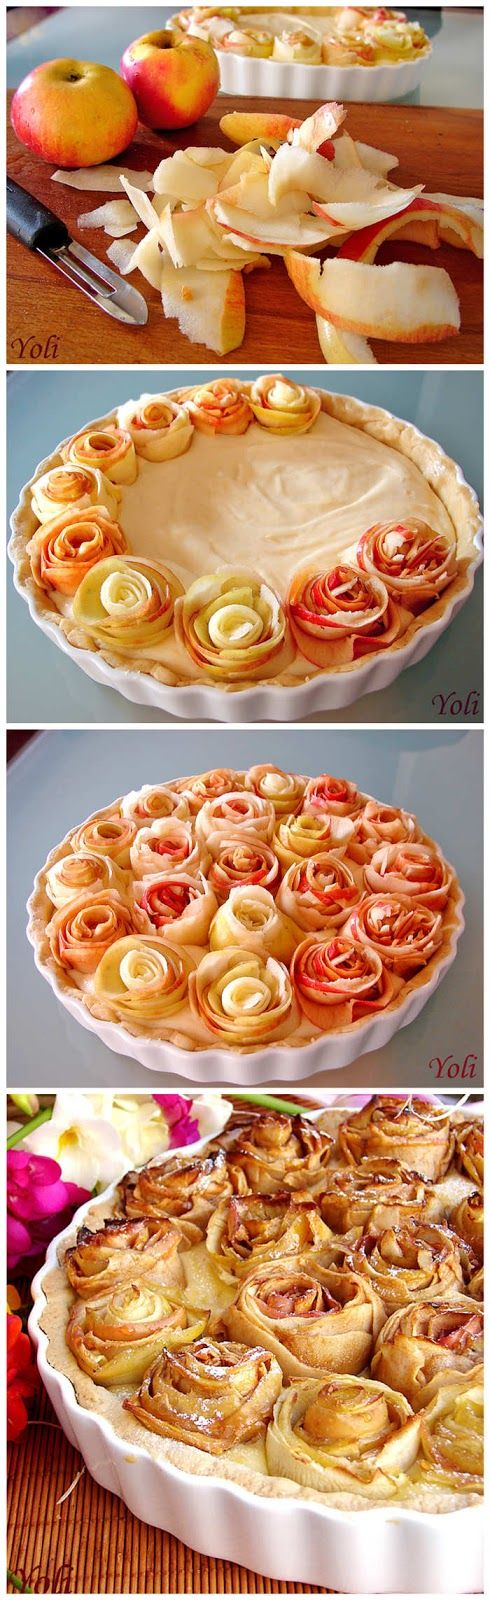 joysama images: Apple pie with roses